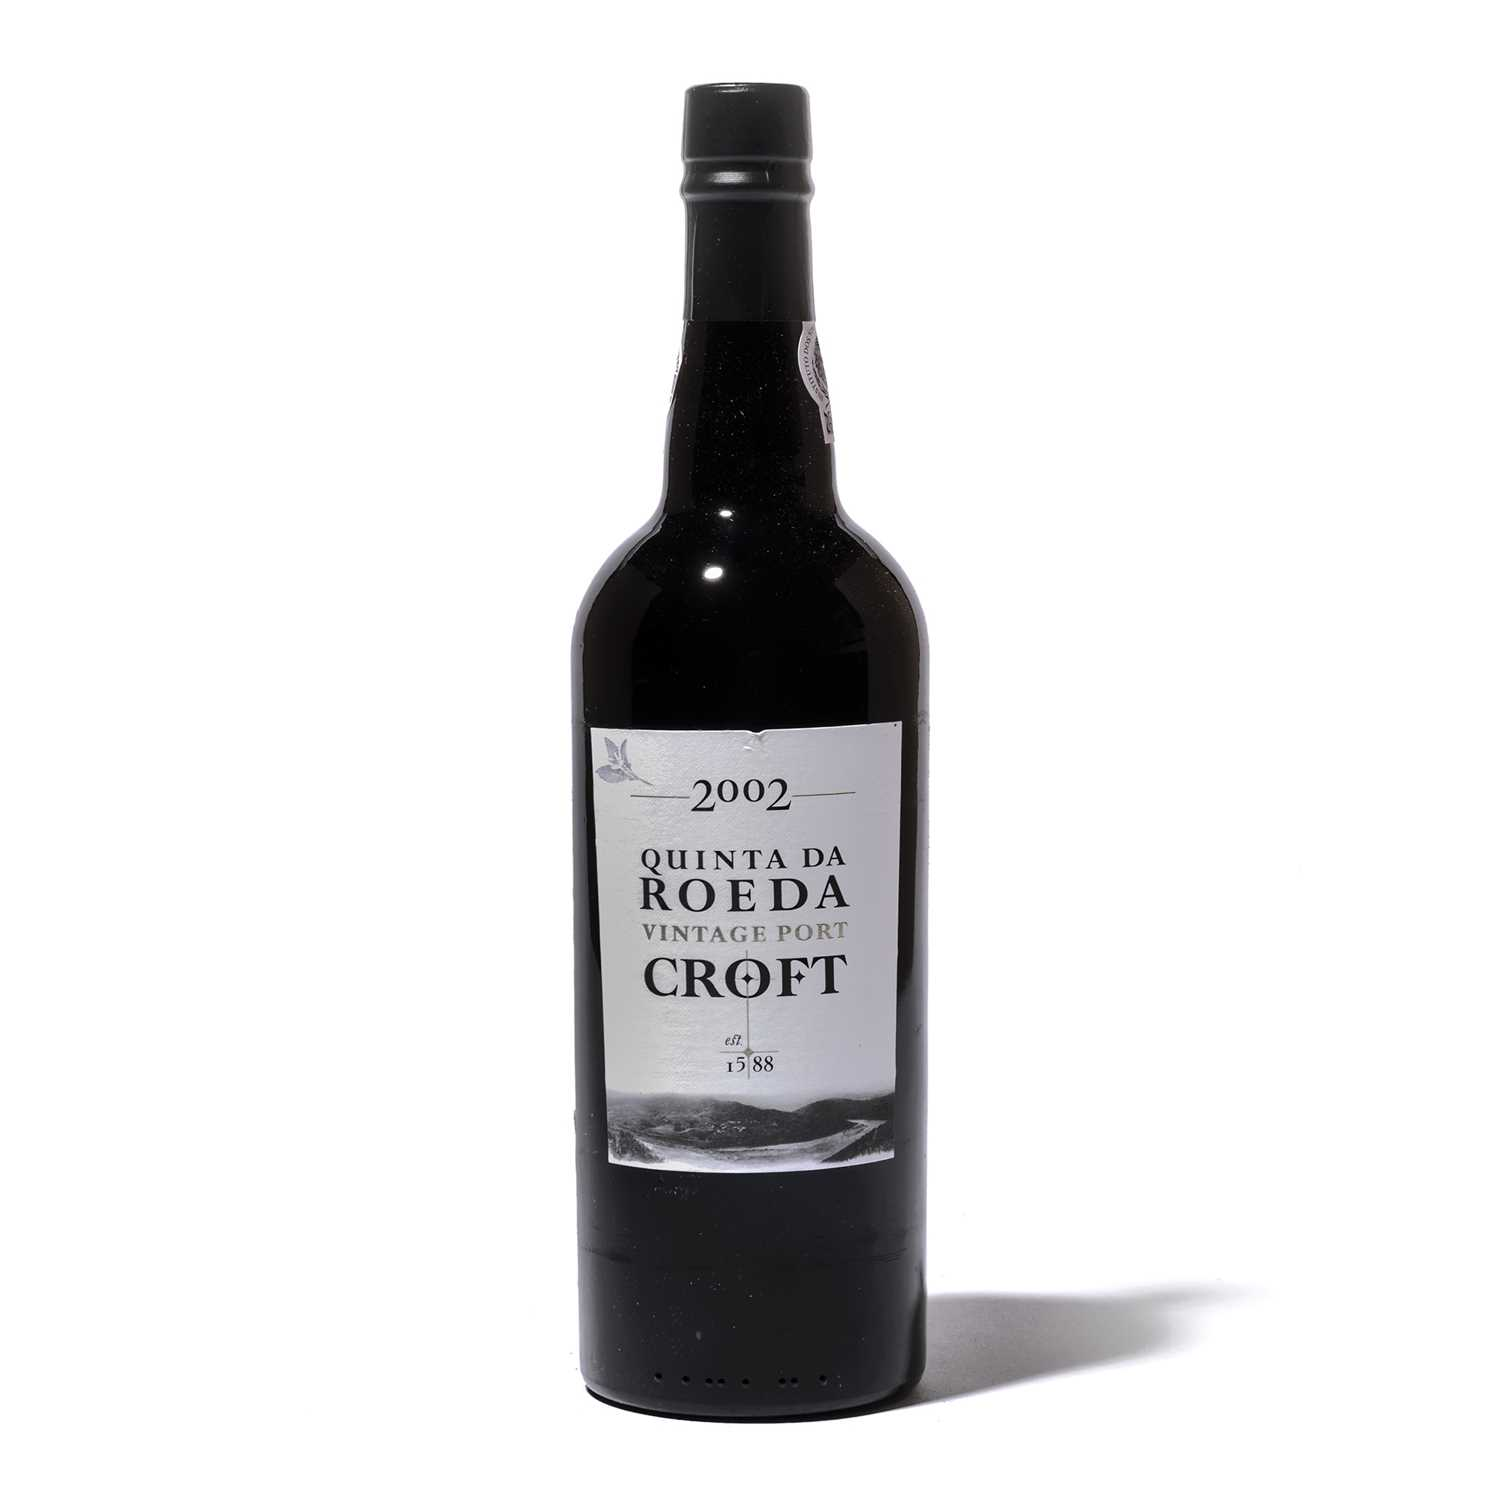 Lot 15-12 bottles 2002 Croft Quinta do Roeda